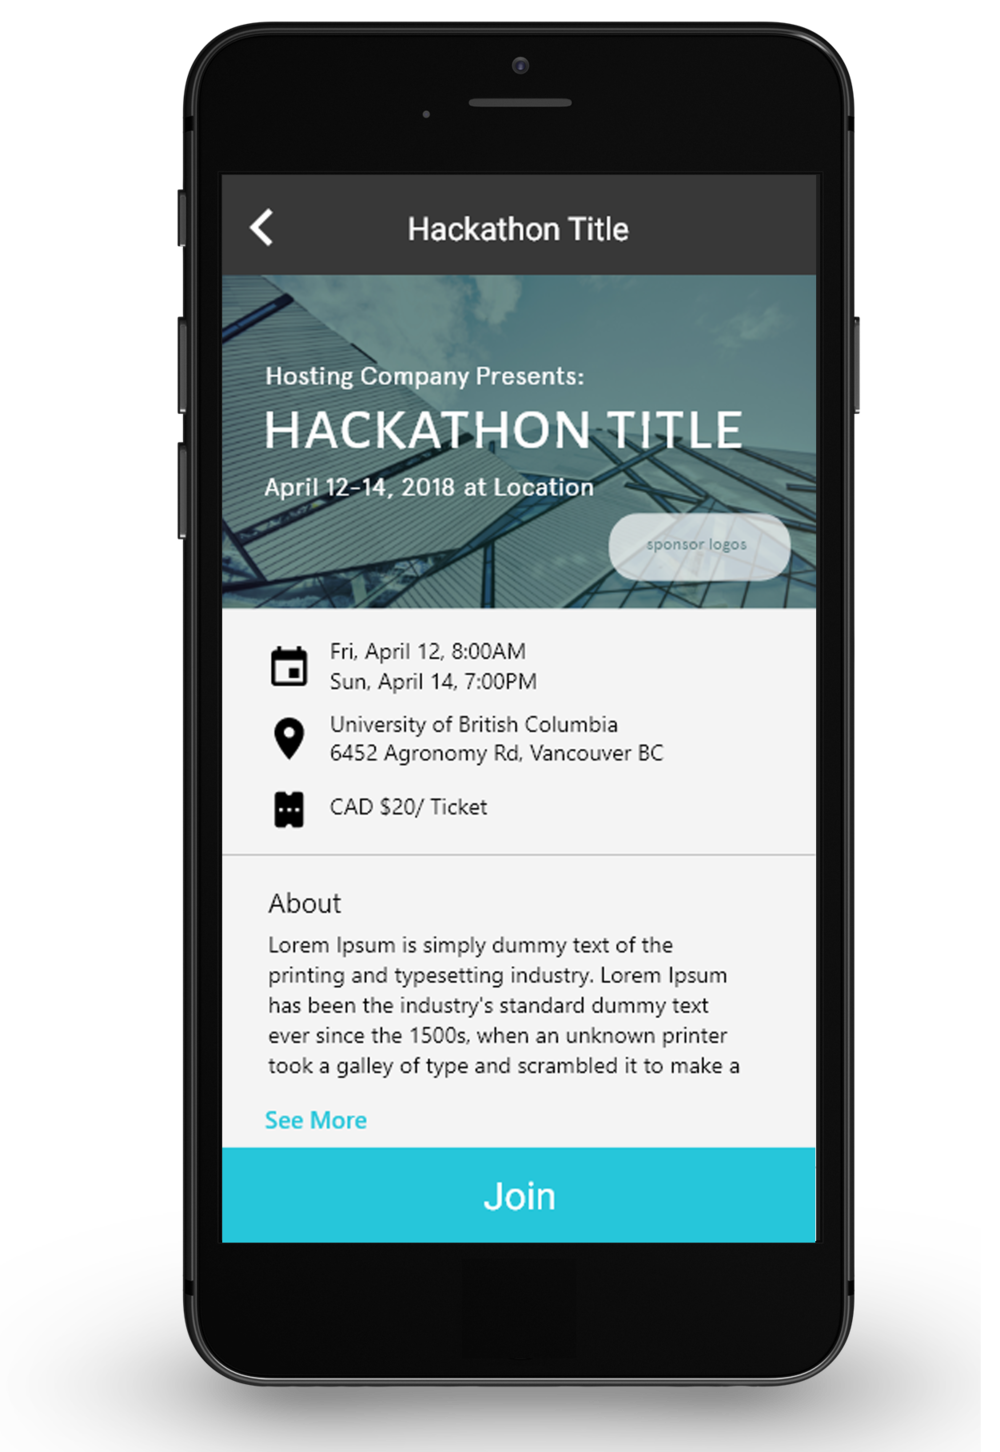 See details about the Hackathon - Made the UI organize information better